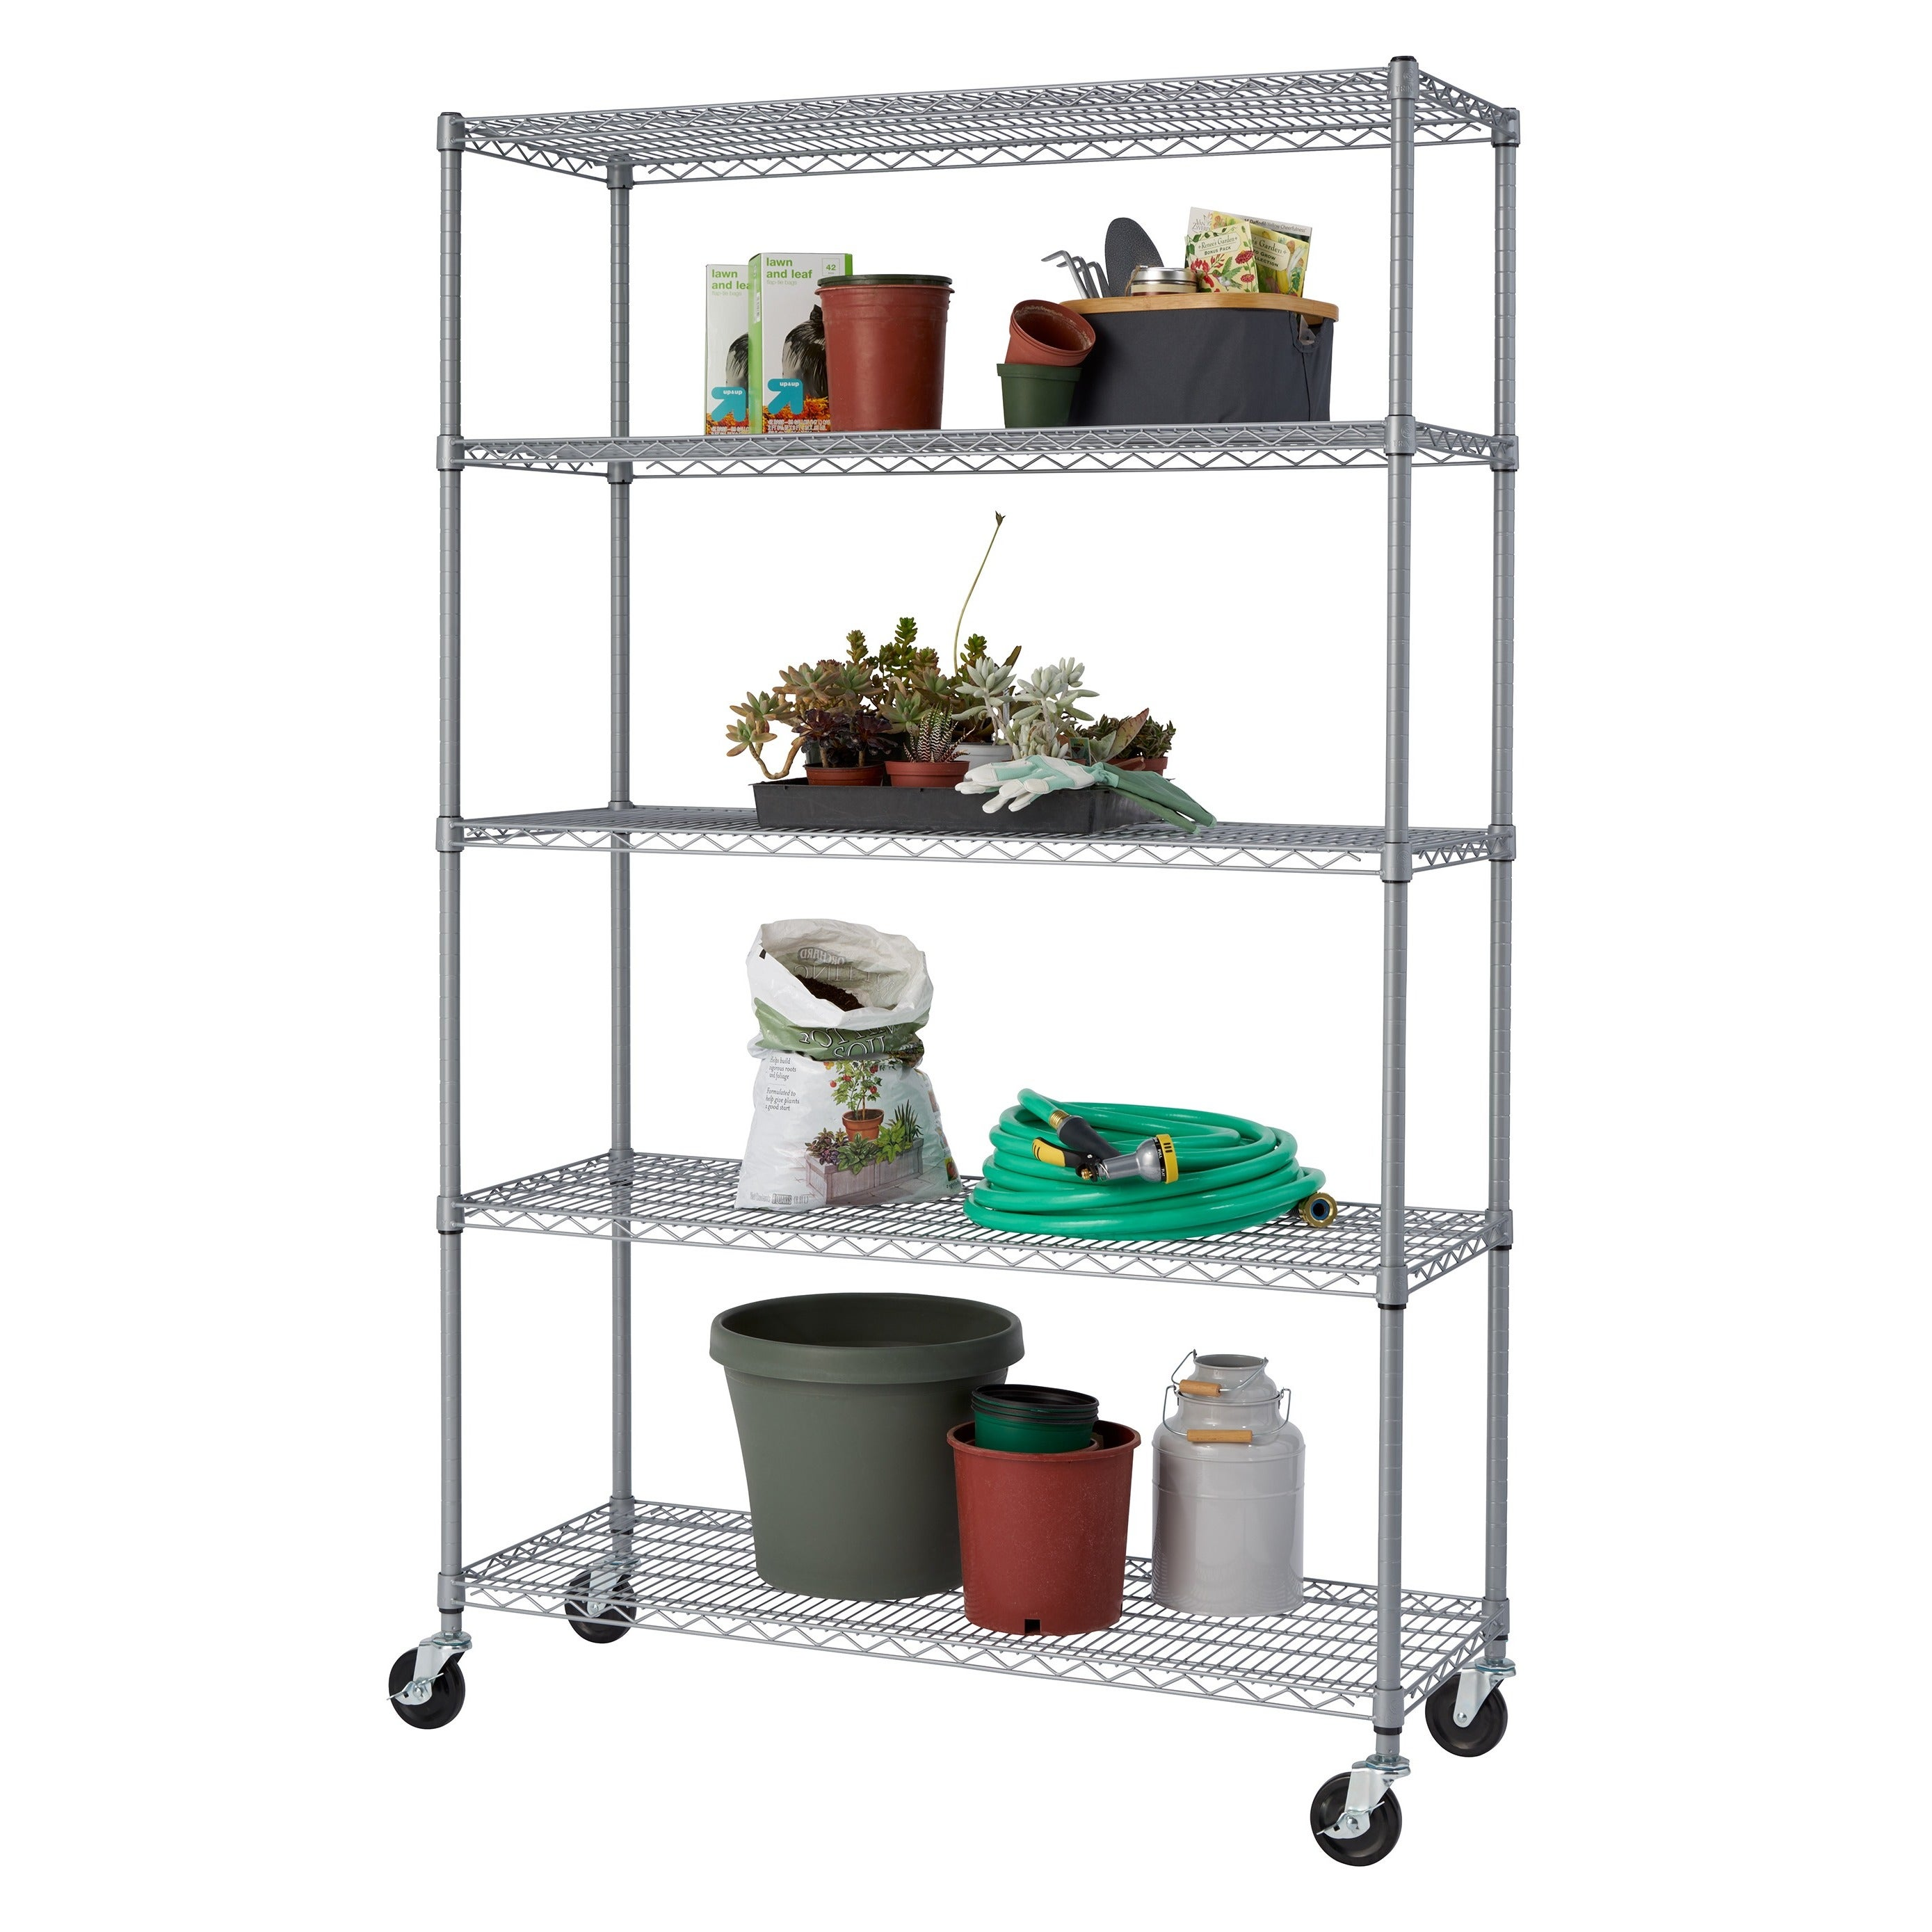 Shop Trinity NSF Adjustable 5-tier Outdoor Wire Shelving Rack with ...